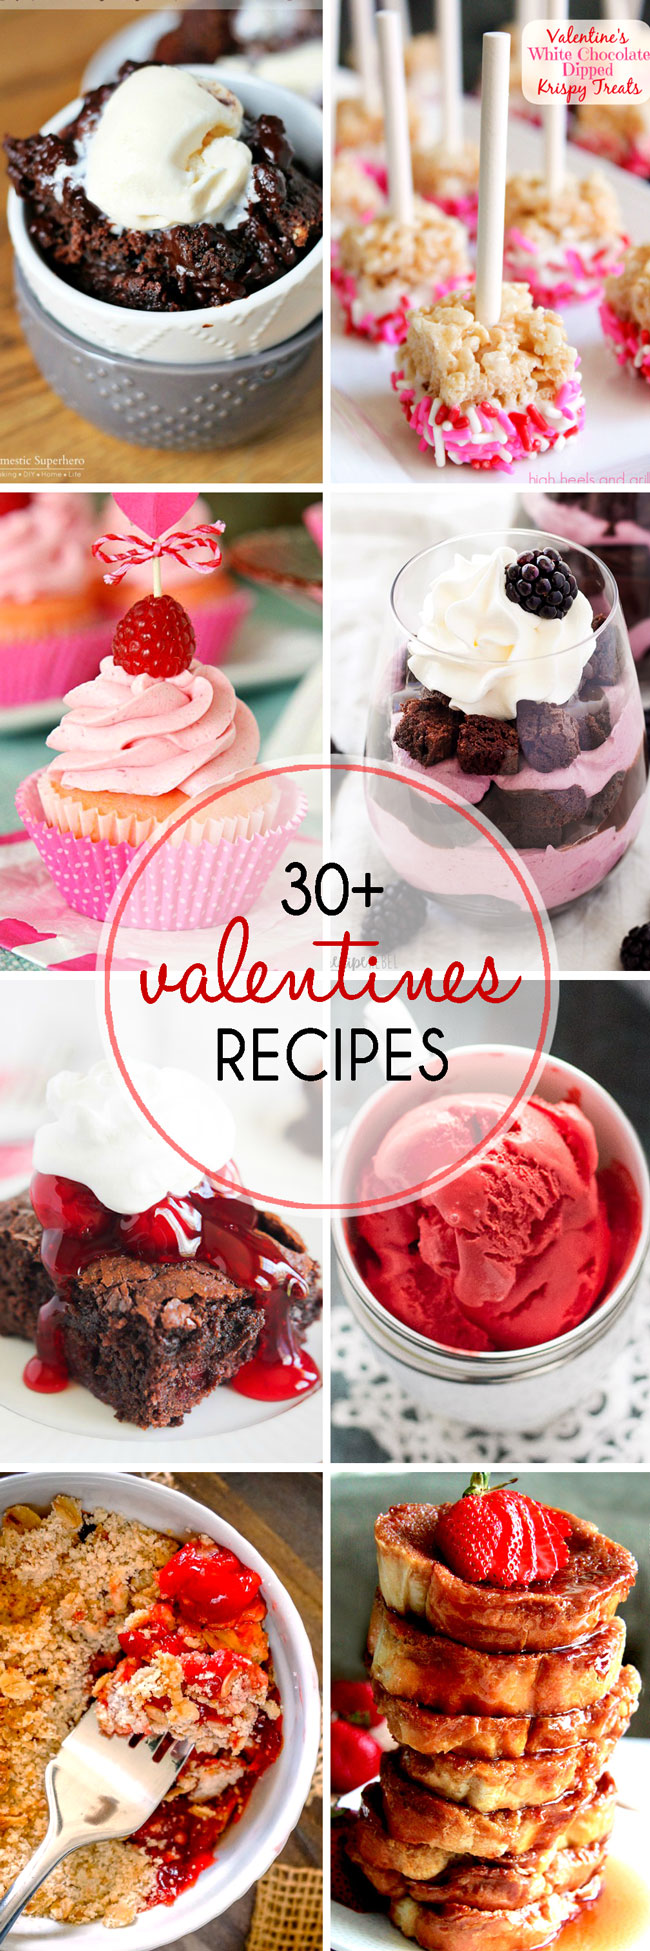 Valentine's Day is right around the corner! To help you celebrate with your sweetie, we've rounded up More Than 30 Valentine's Day Dessert Recipes that are made for sharing!